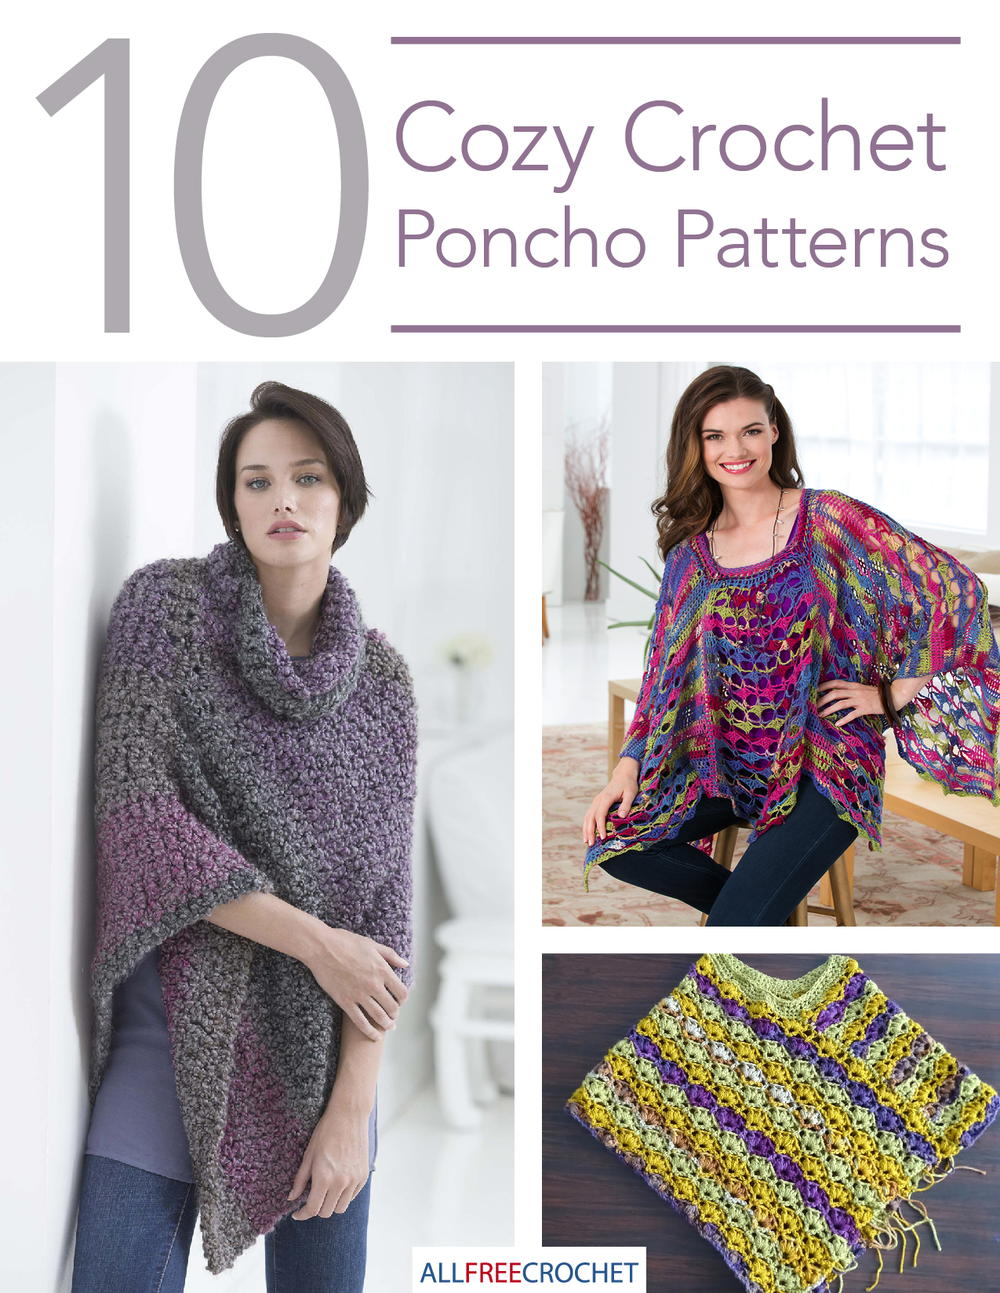 10 Cozy Crochet Poncho Patterns | AllFreeCrochet.com